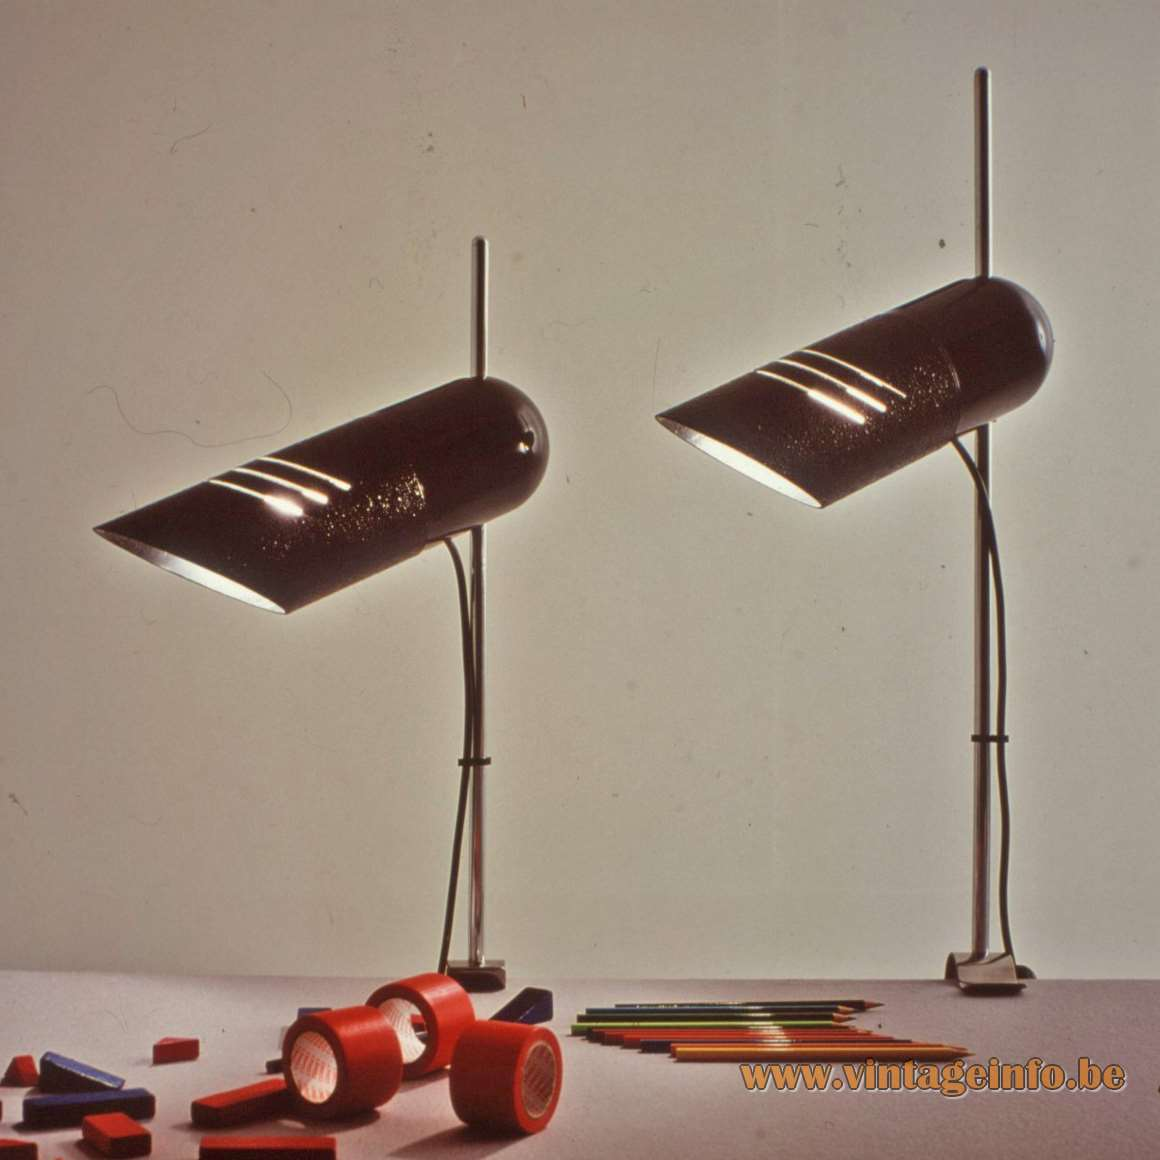 Harvey Guzzini Galdino Clamp Lamp design: Carlo Urbinati 1973 cast iron base tubular lampshade 1970s MCM